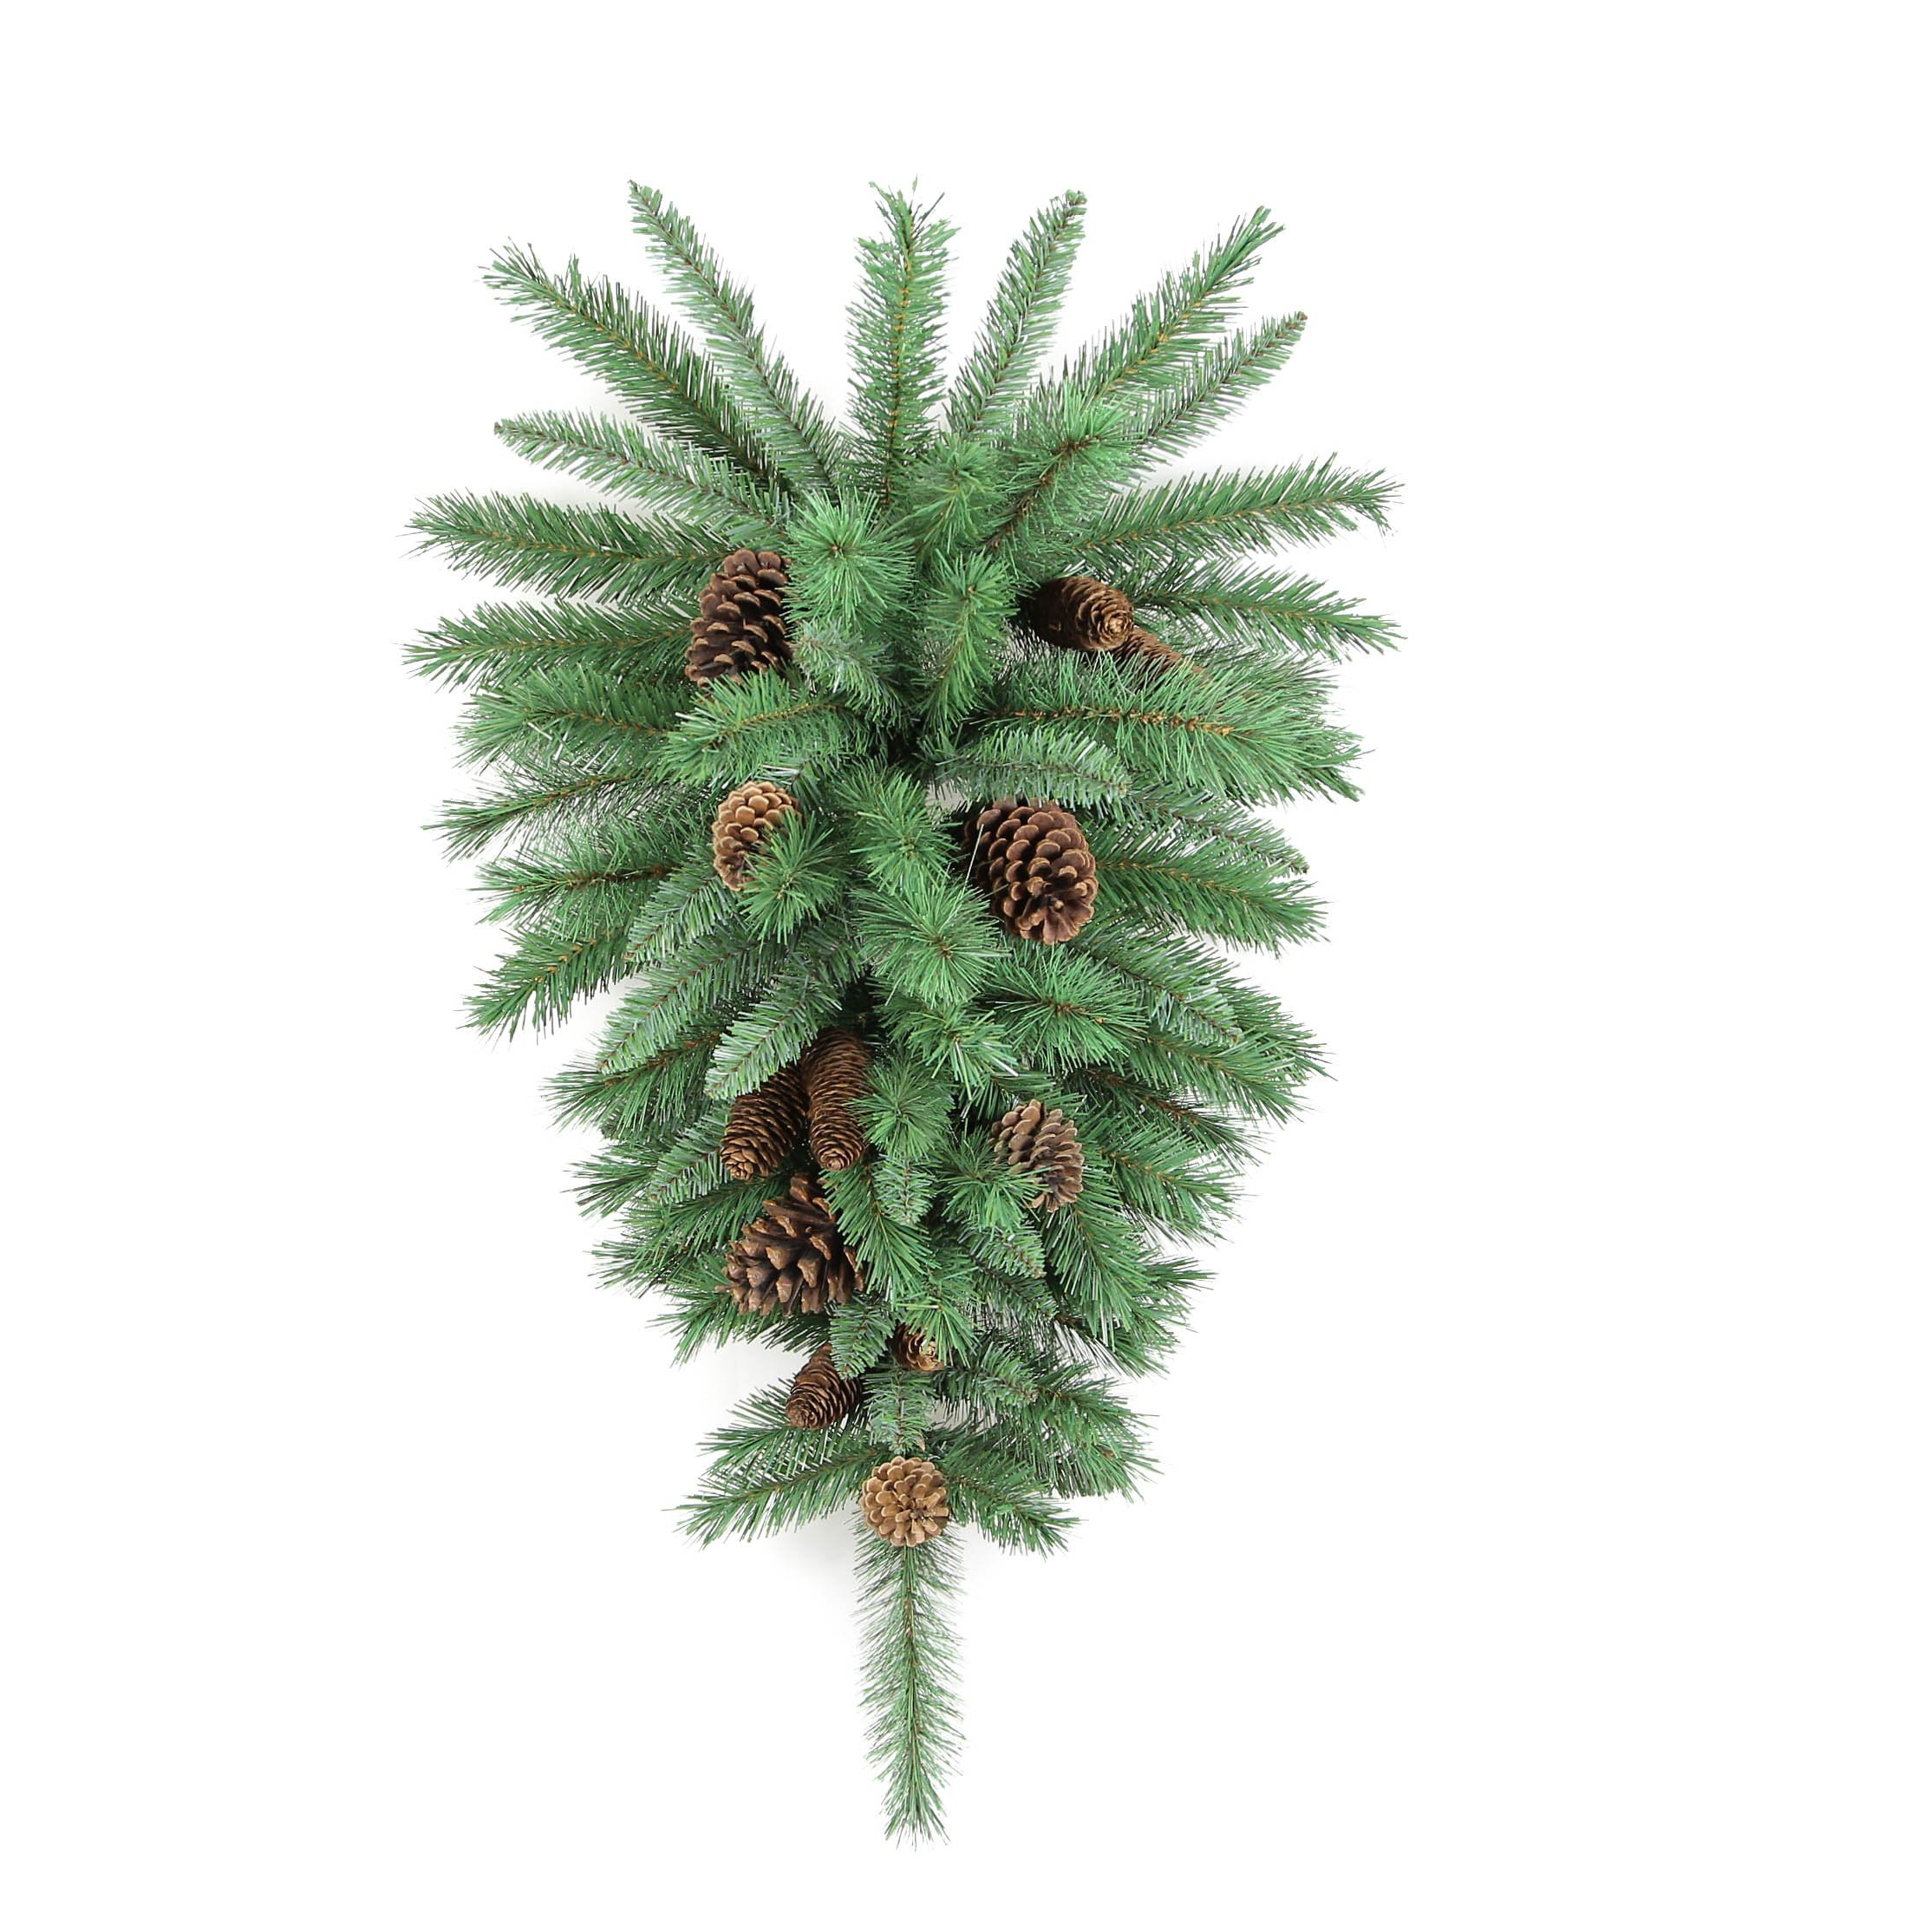 Admired By Nature GXW4925-NATURAL 72 Tips Christmas Pine Teardrop Swag With Natural Pine Cone